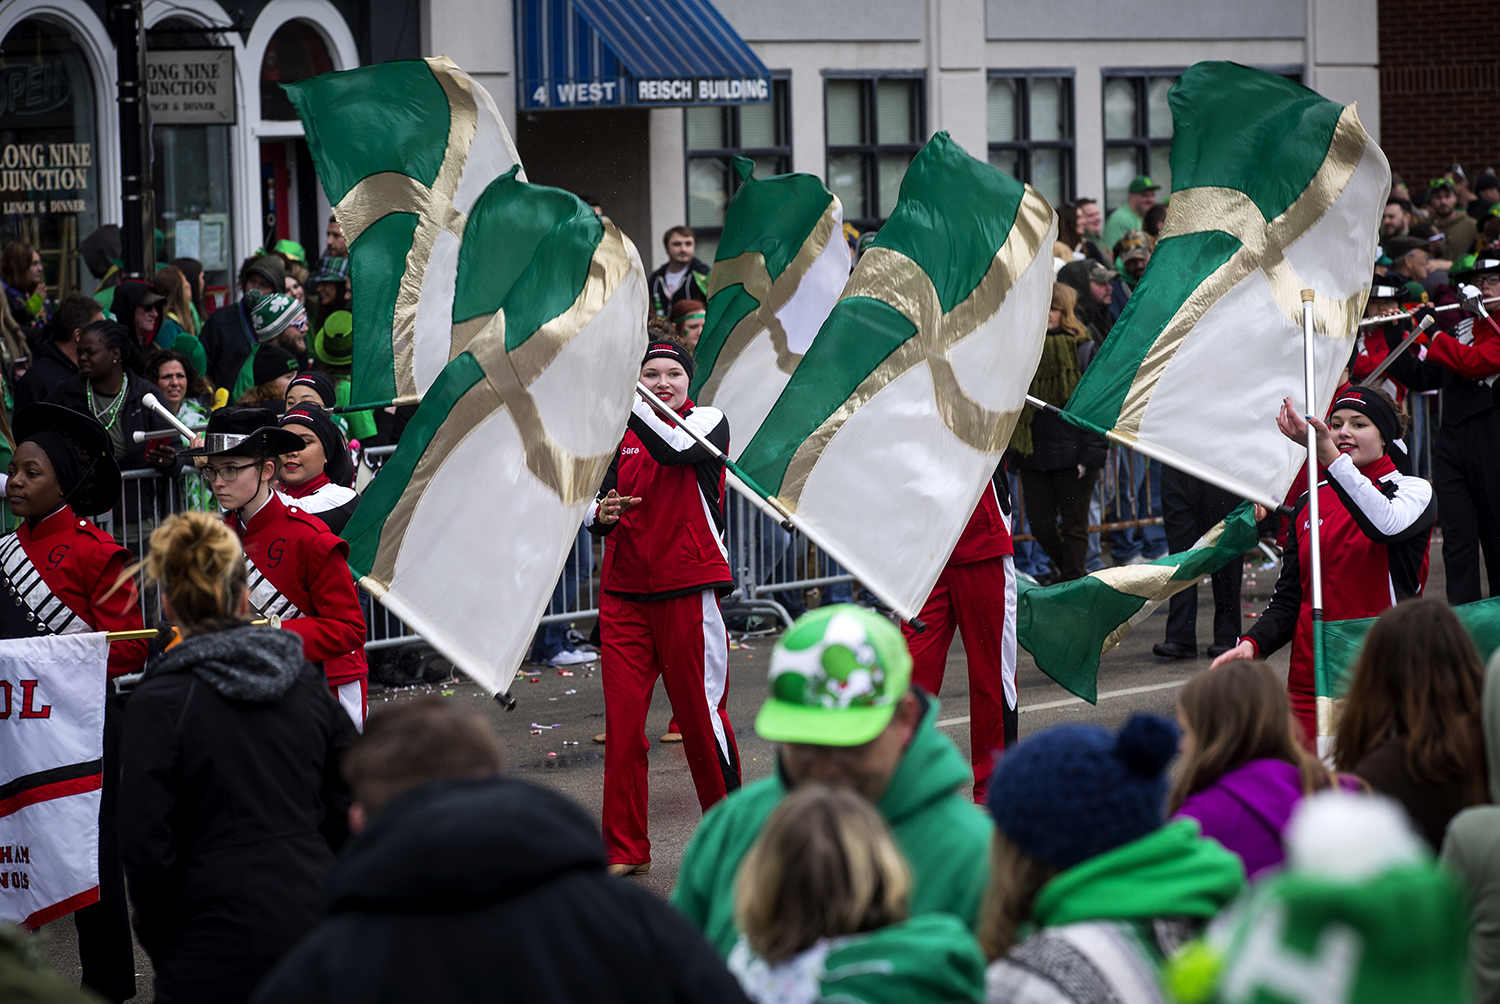 The Glenwood High School marching band flag team walks down Fifth Street during the St. Patrick's Day Parade Saturday, March 17, 2018  in Springfield, Ill. [Rich Saal/The State Journal-Register]